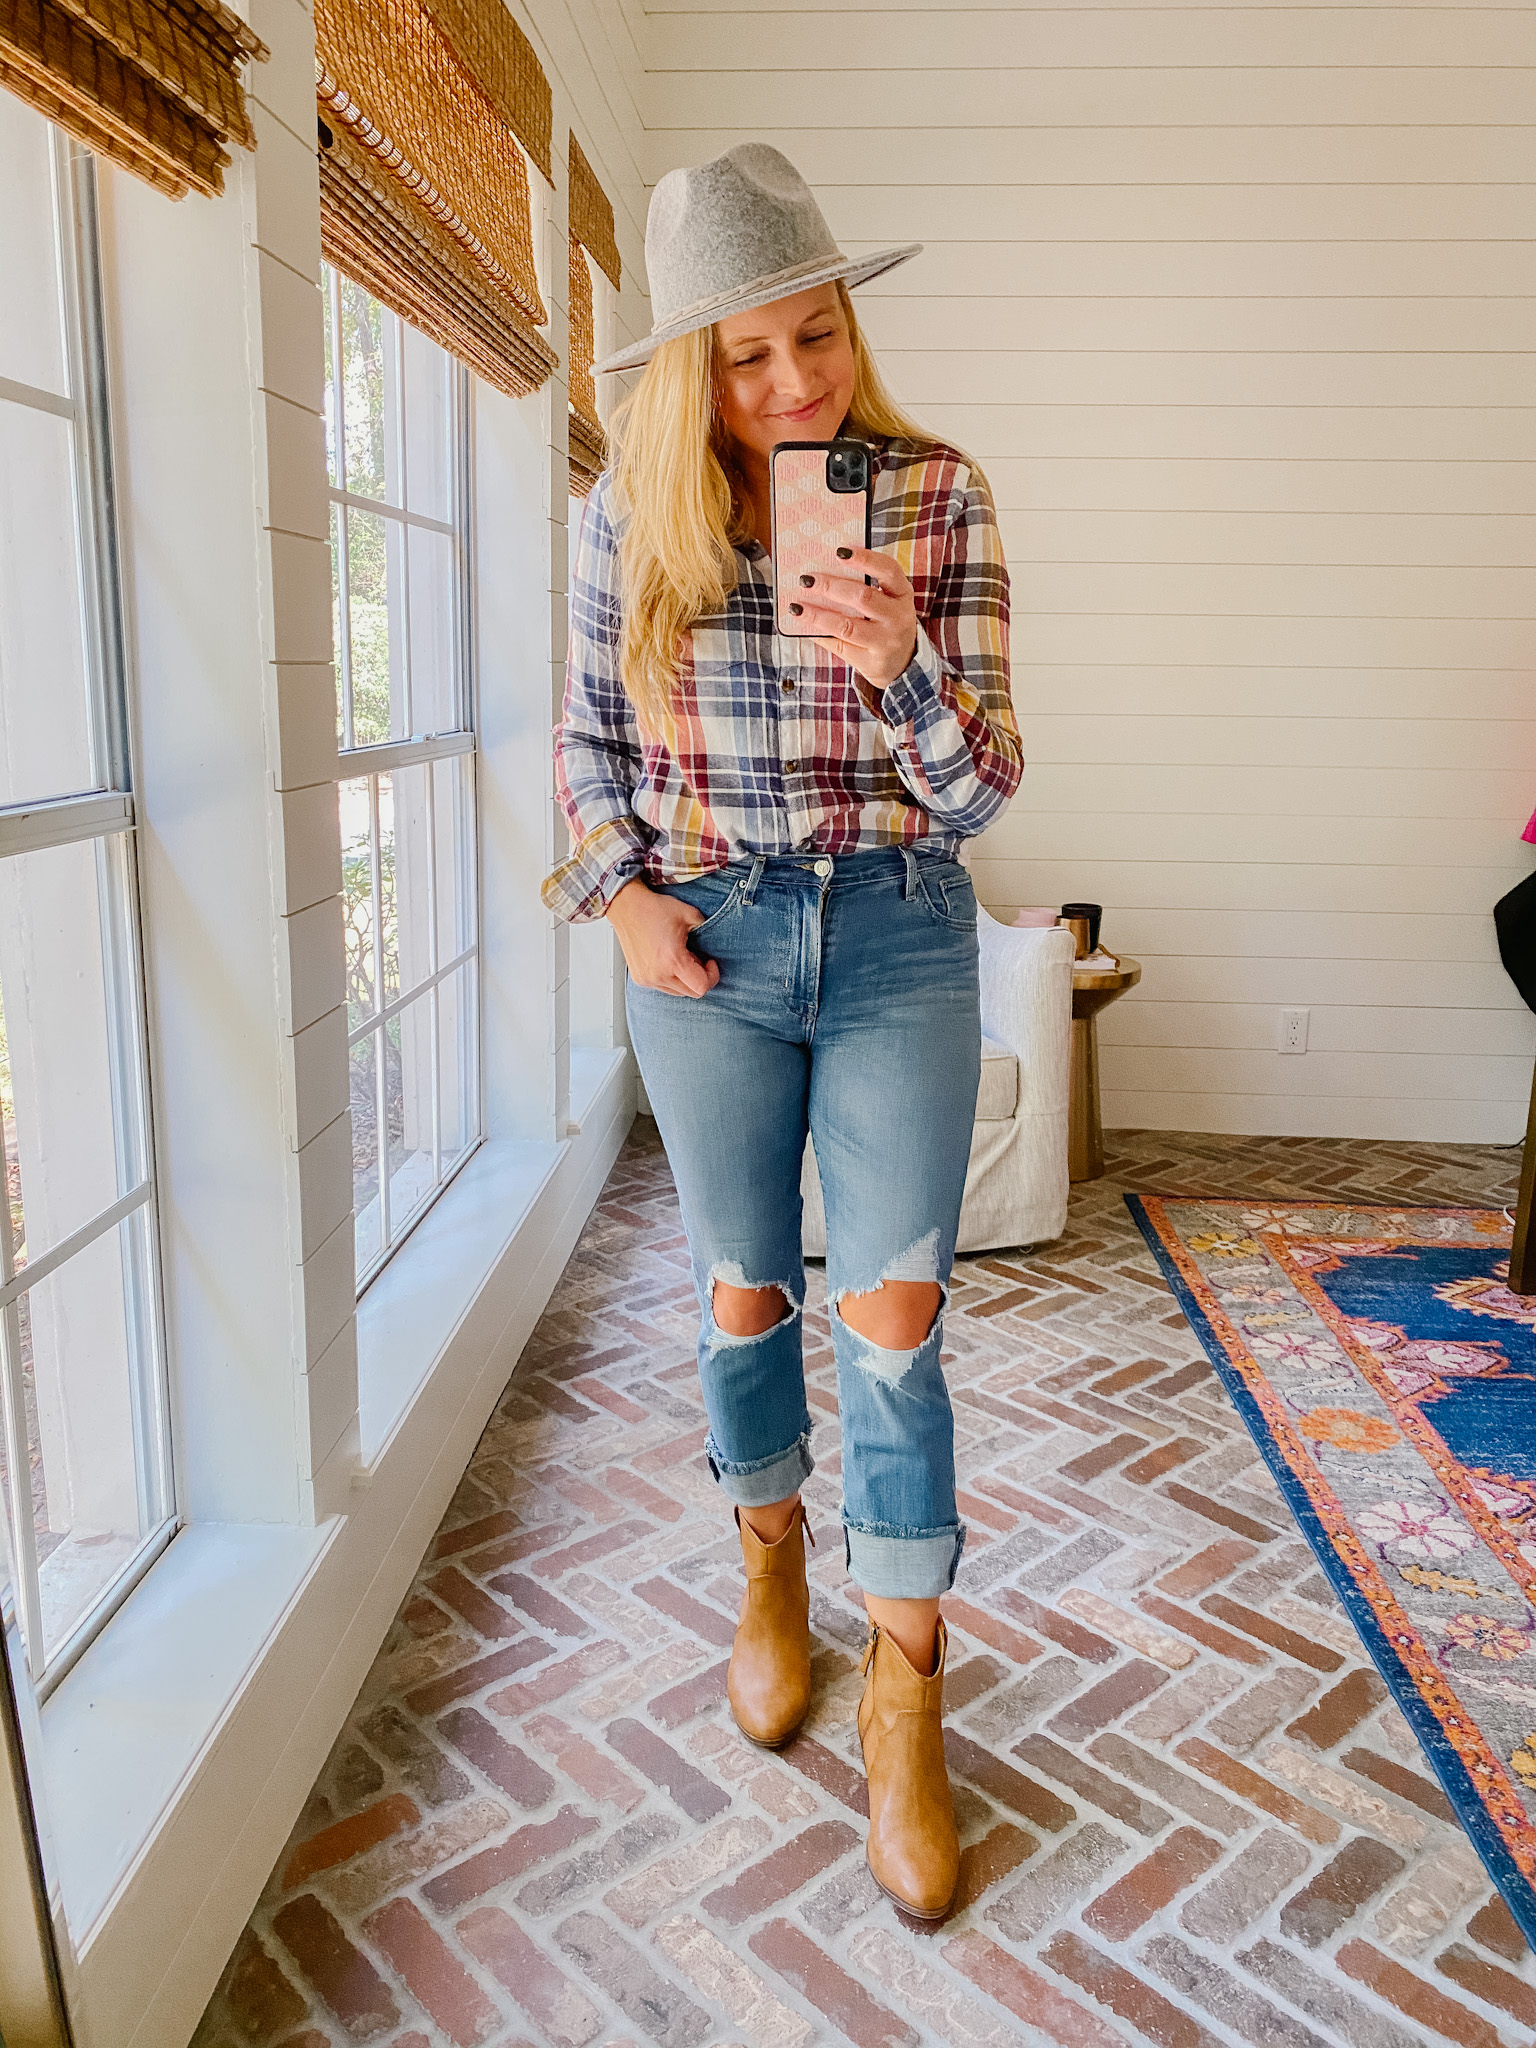 Prime Day by popular Houston fashion blog, Fancy Ashley: image of a woman wearing a Amazon plaid button up shirt, felt hat, distressed denim, and tan ankle boots.